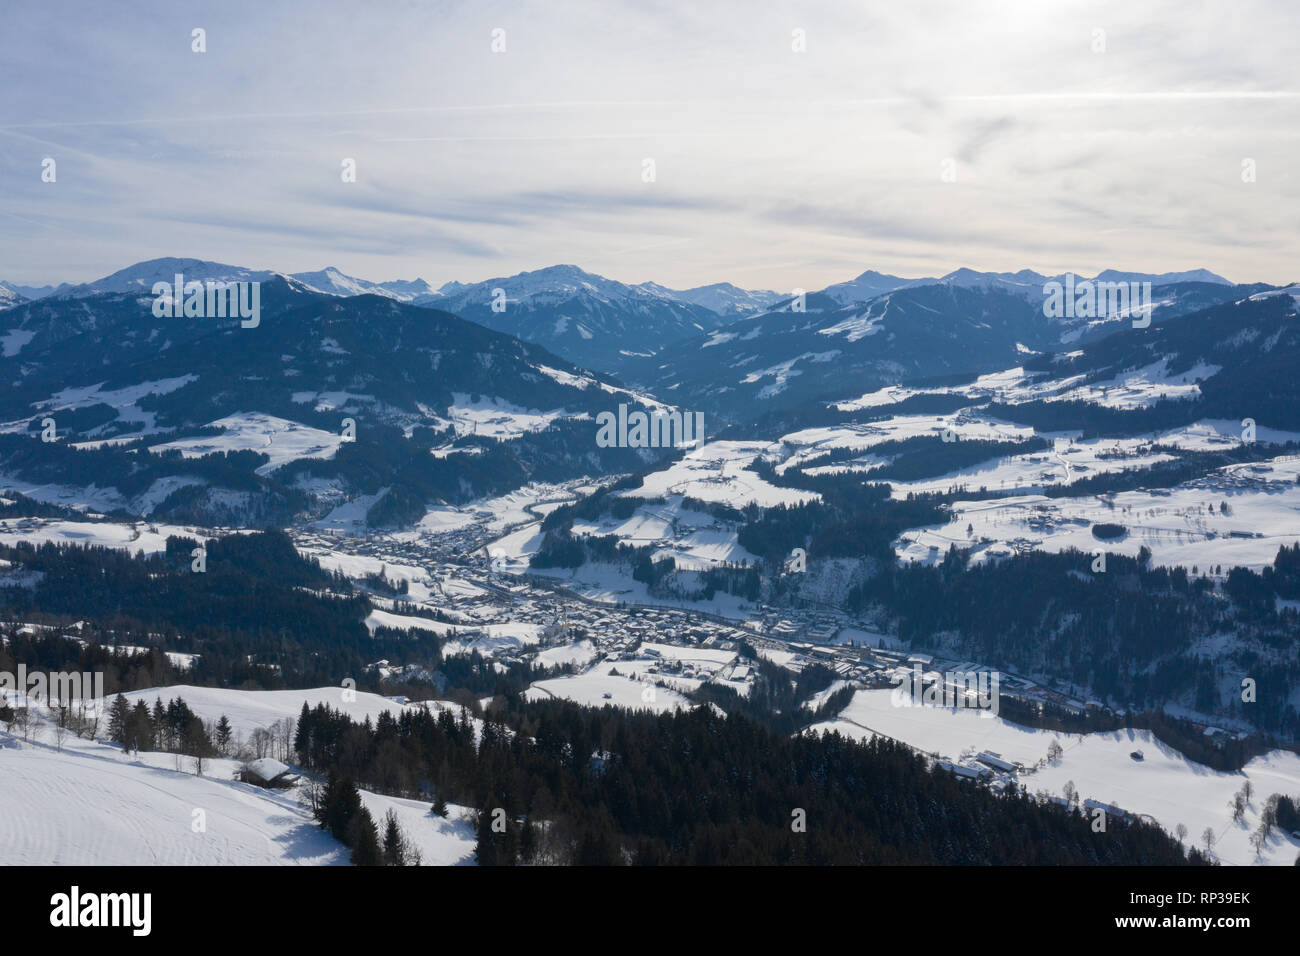 View from a drone on a small village among winter mountains covered with forests and snow in Alps. - Stock Image